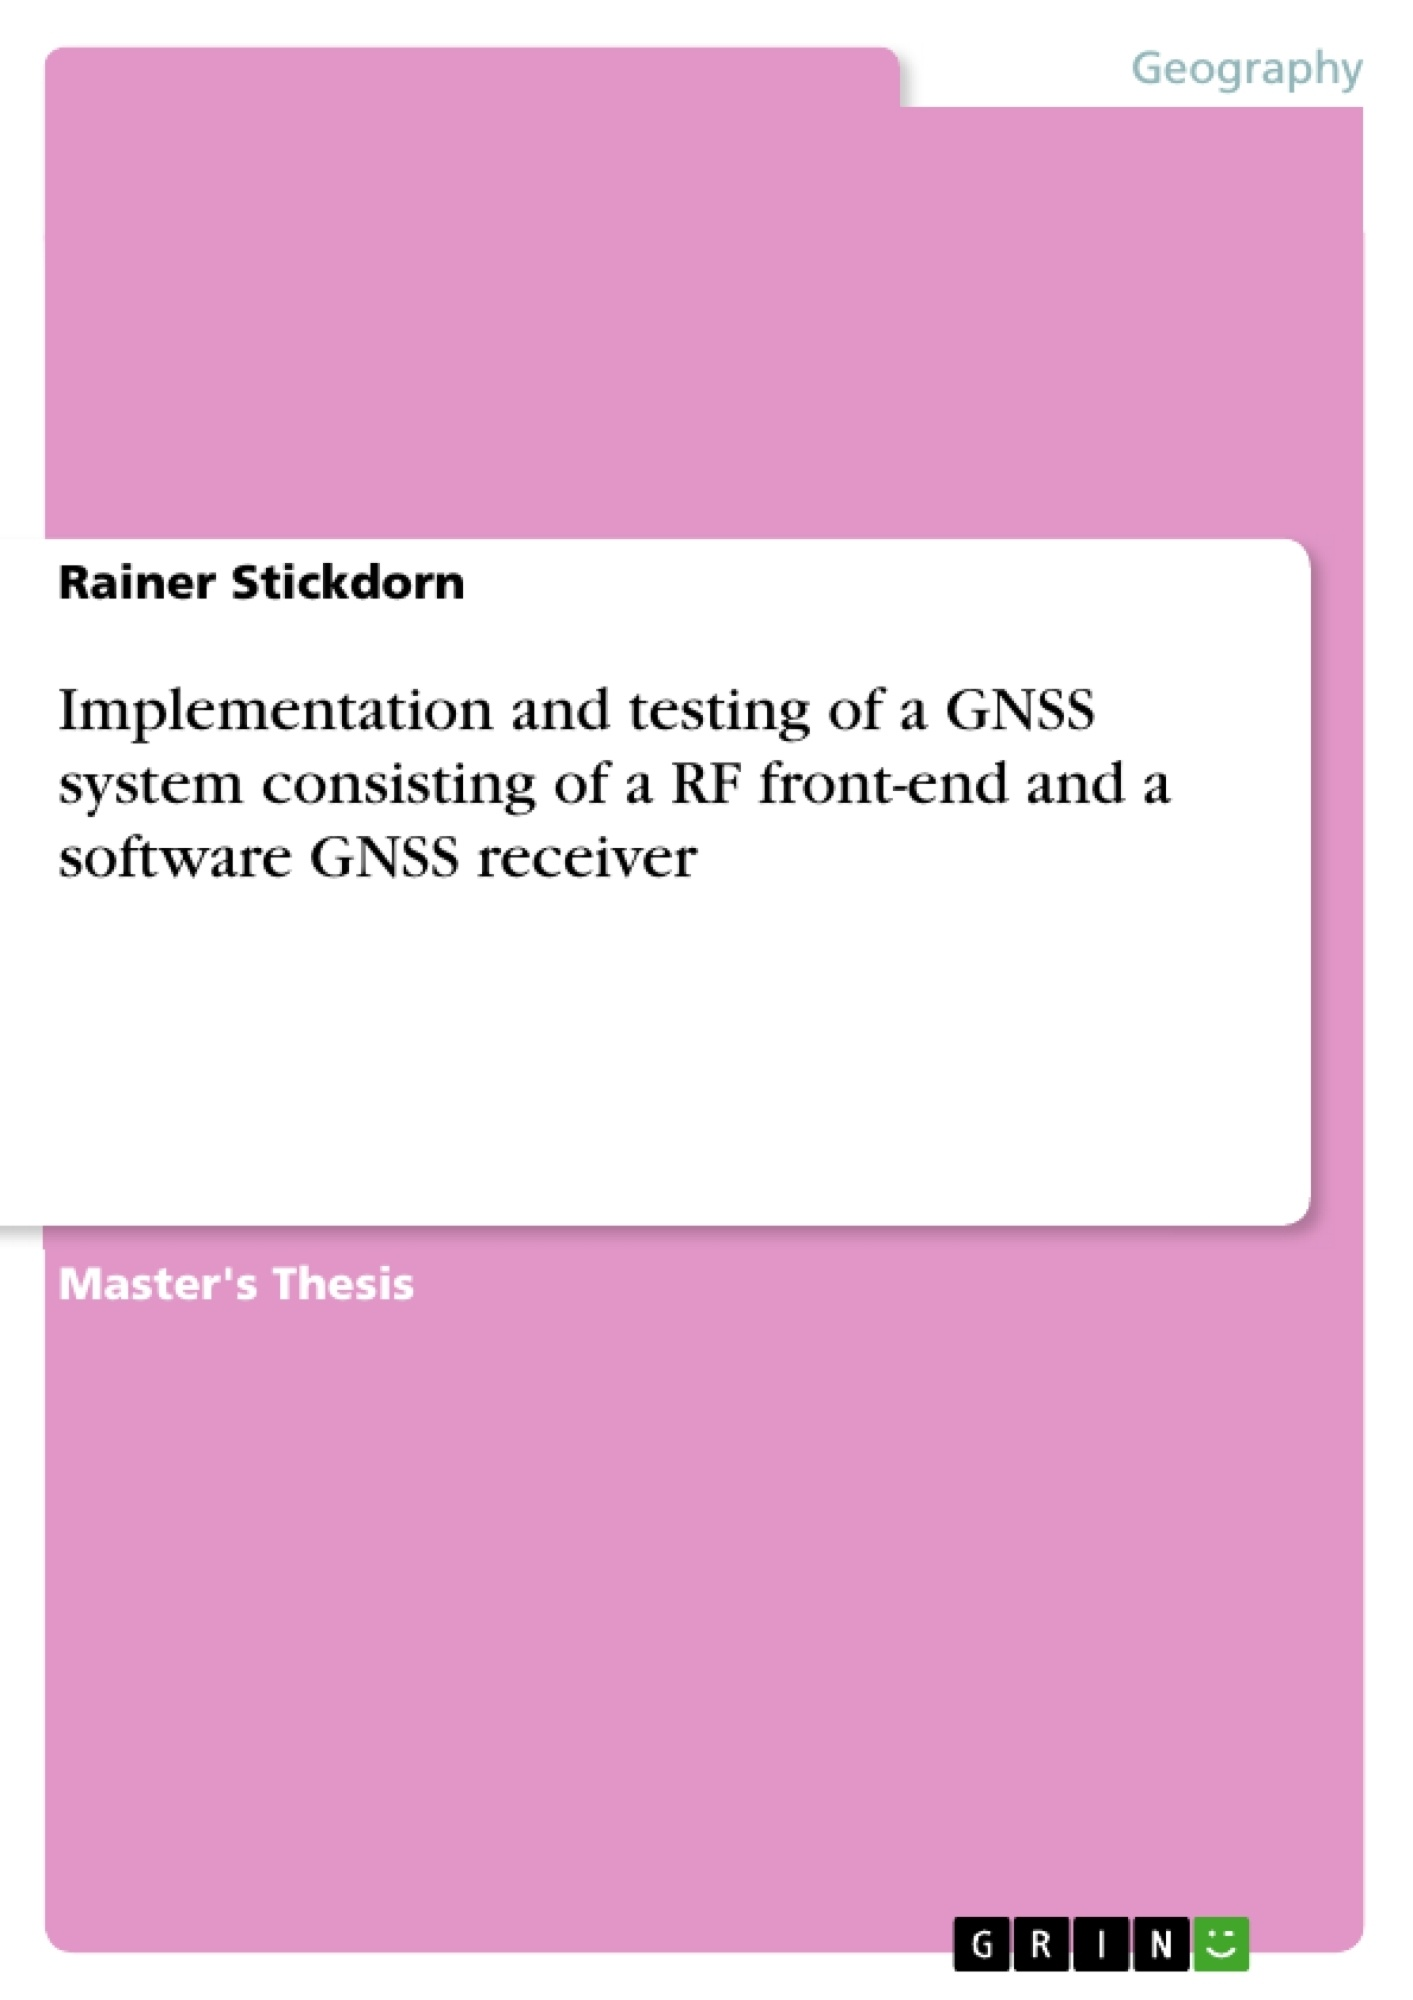 Title: Implementation and testing of a GNSS system consisting of a RF front-end and a software GNSS receiver